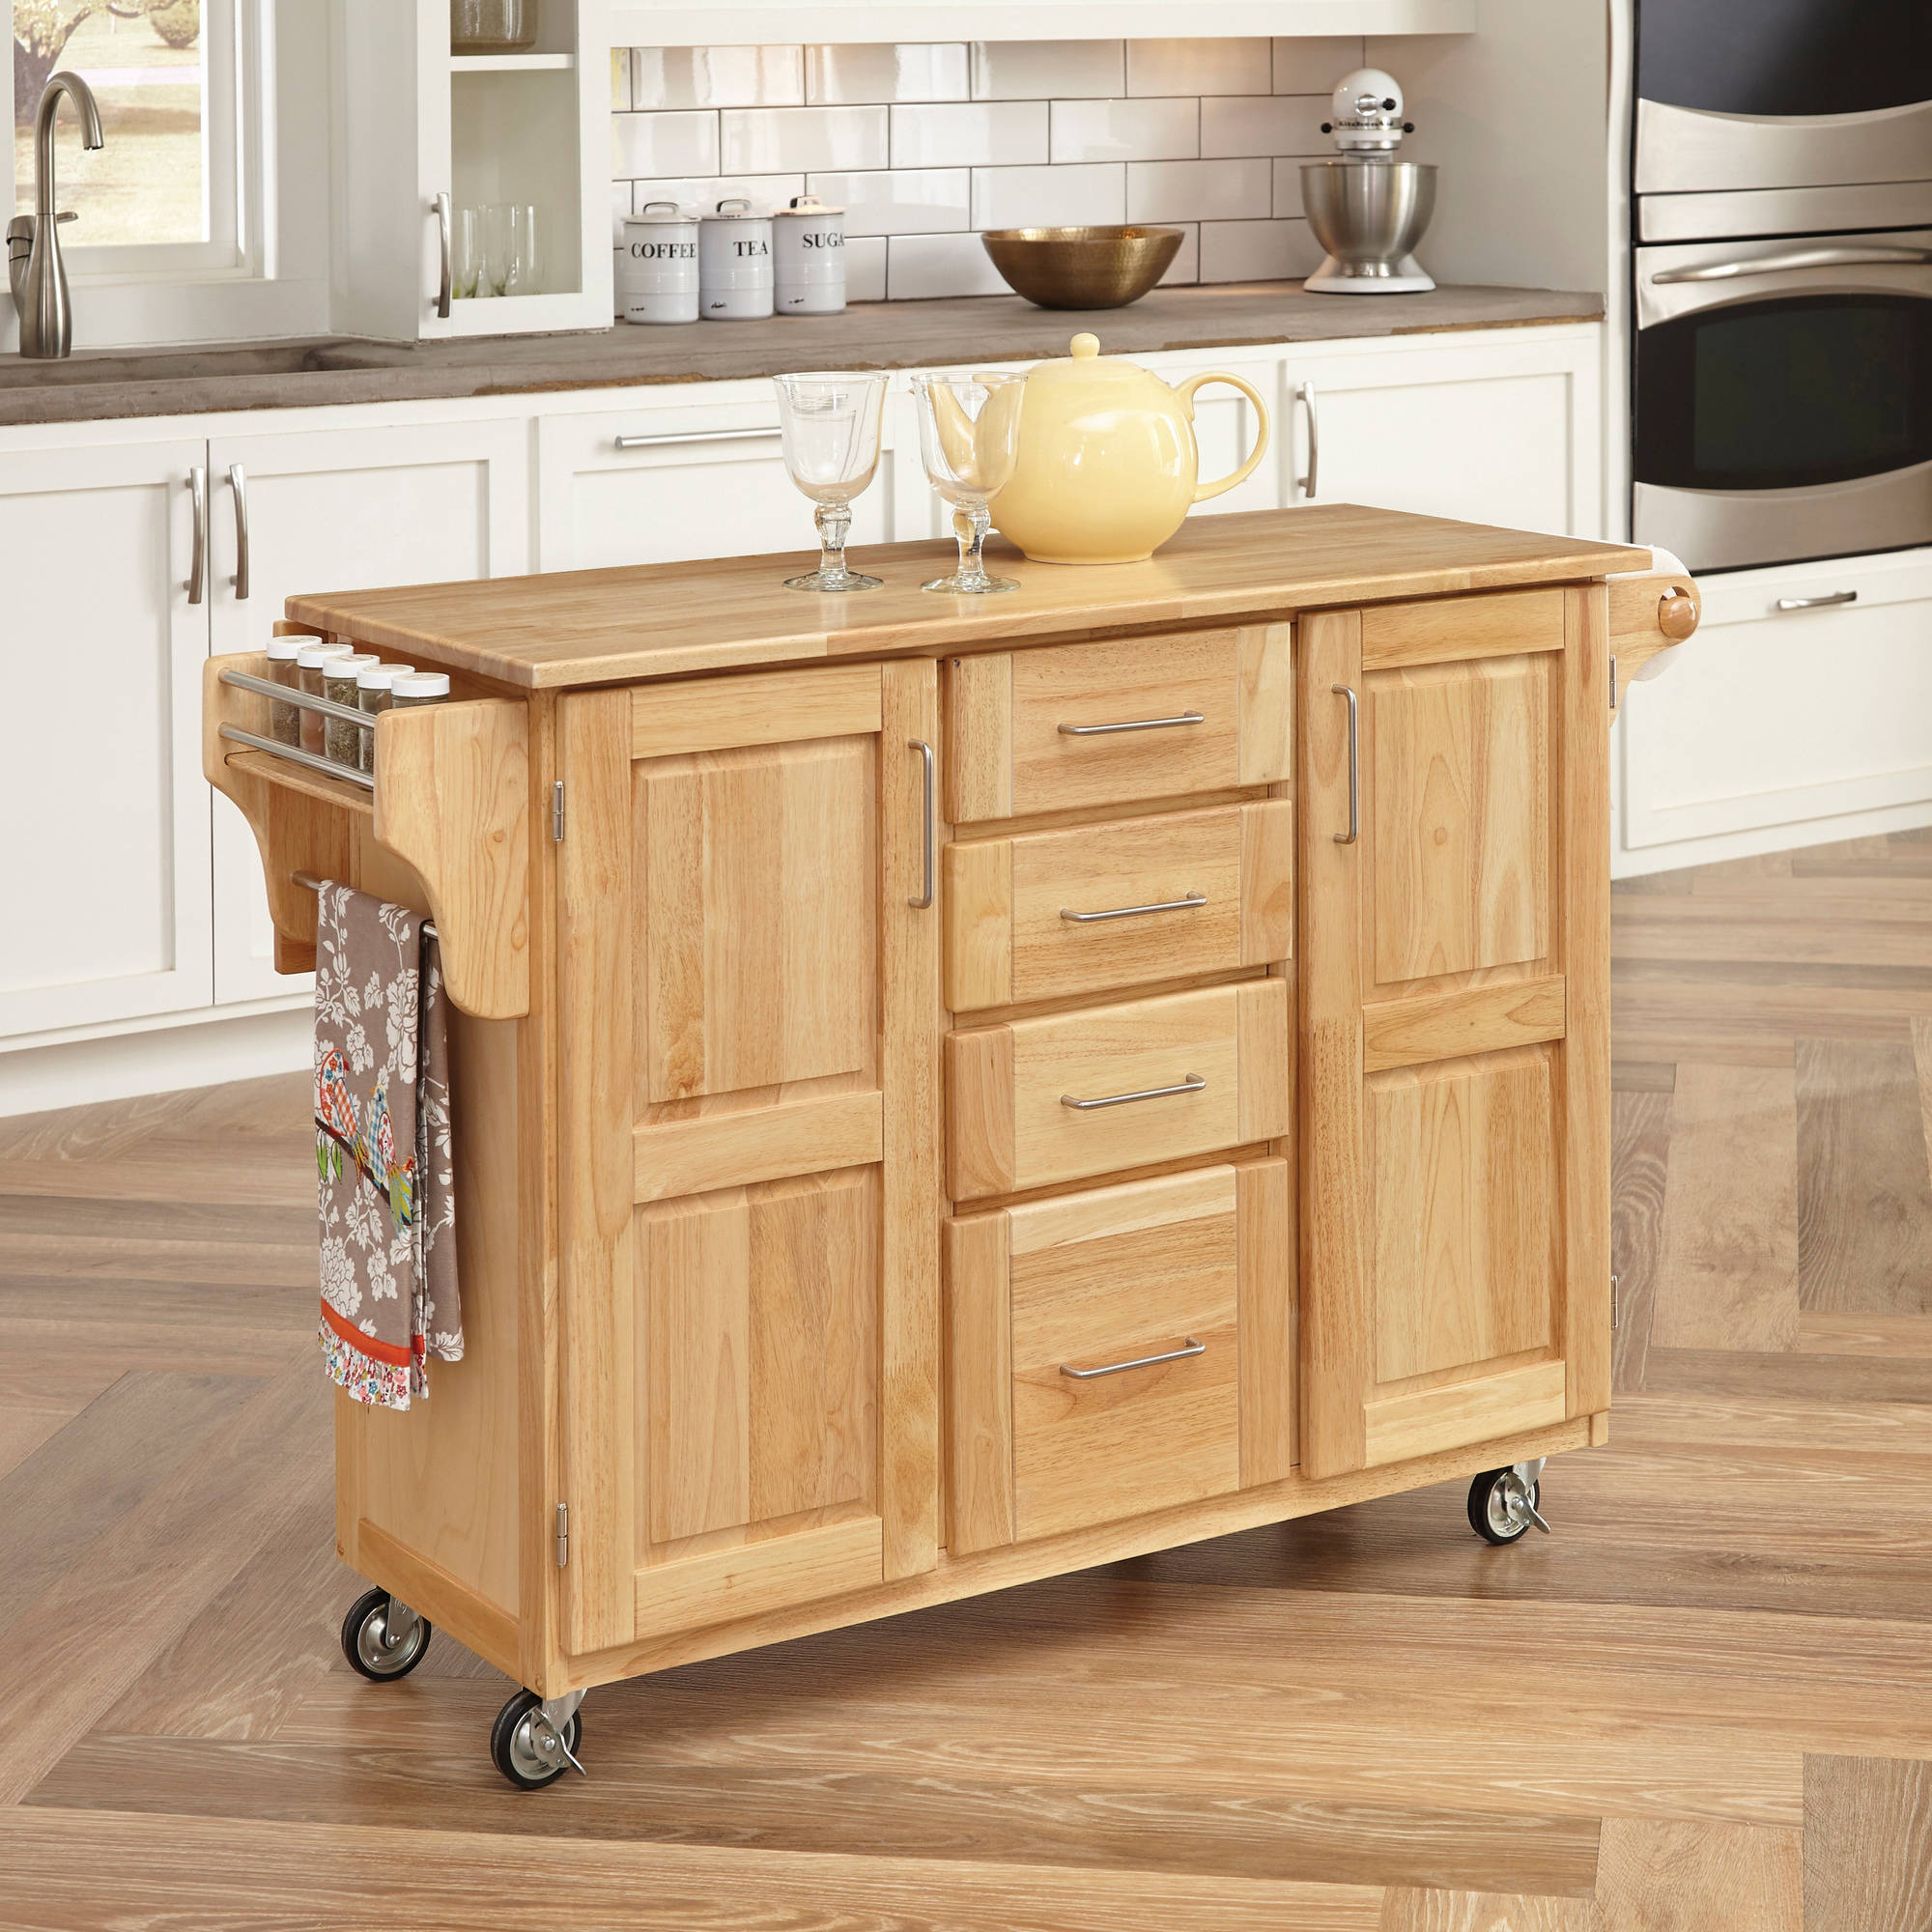 home styles natural breakfast bar kitchen cart with wood top home styles natural breakfast bar kitchen cart with wood top walmart com